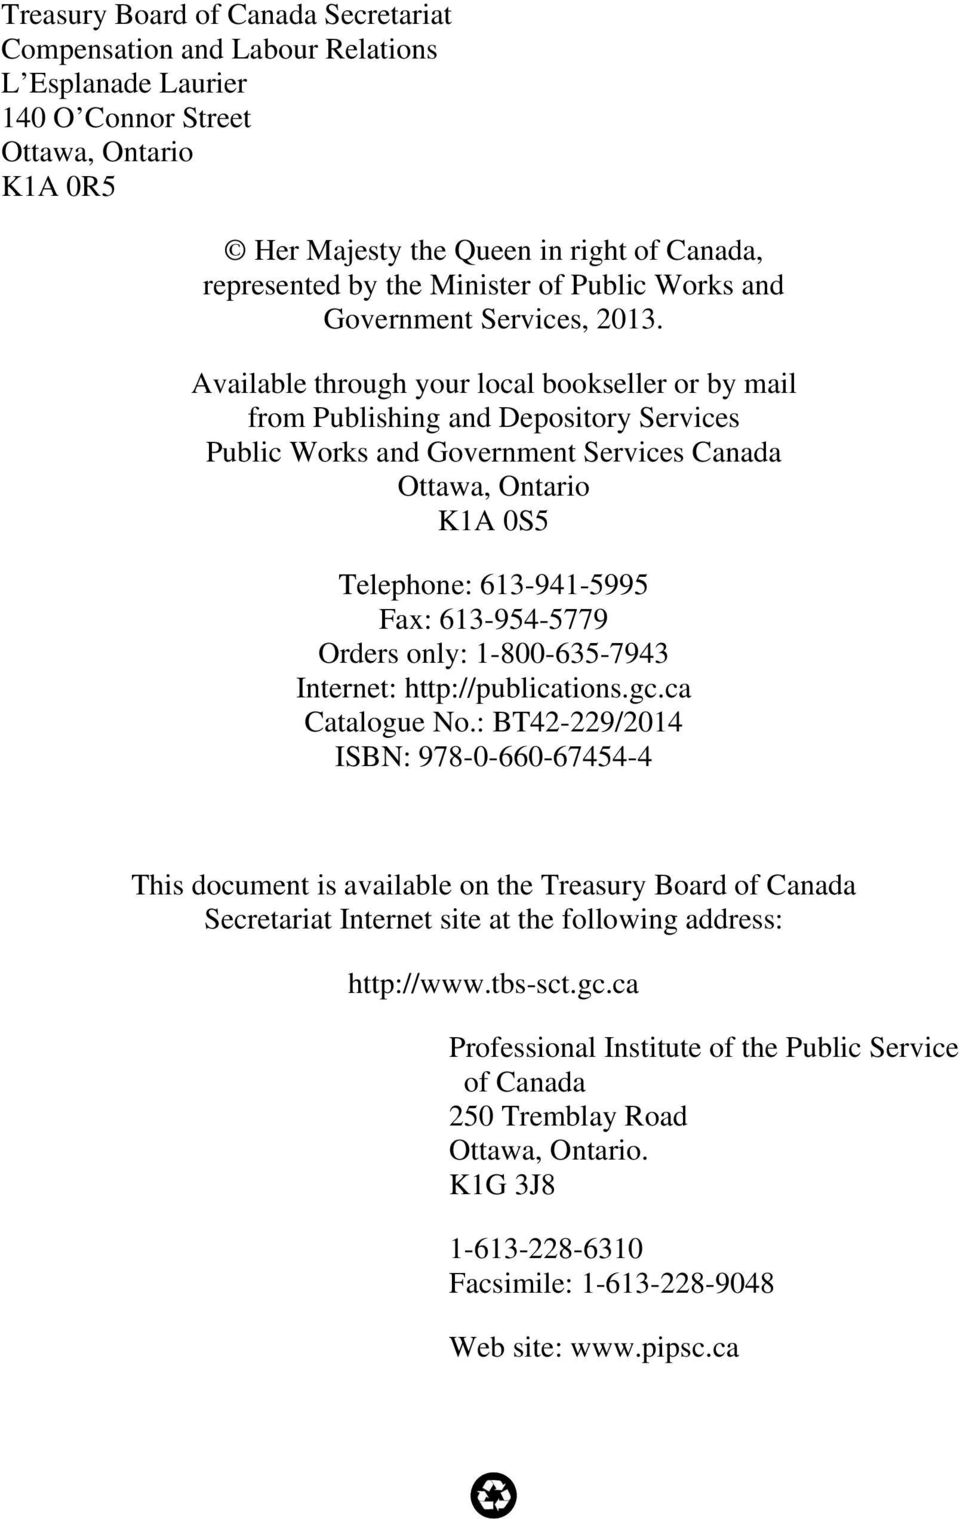 Available through your local bookseller or by mail from Publishing and Depository Services Public Works and Government Services Canada Ottawa, Ontario K1A 0S5 Telephone: 613-941-5995 Fax: